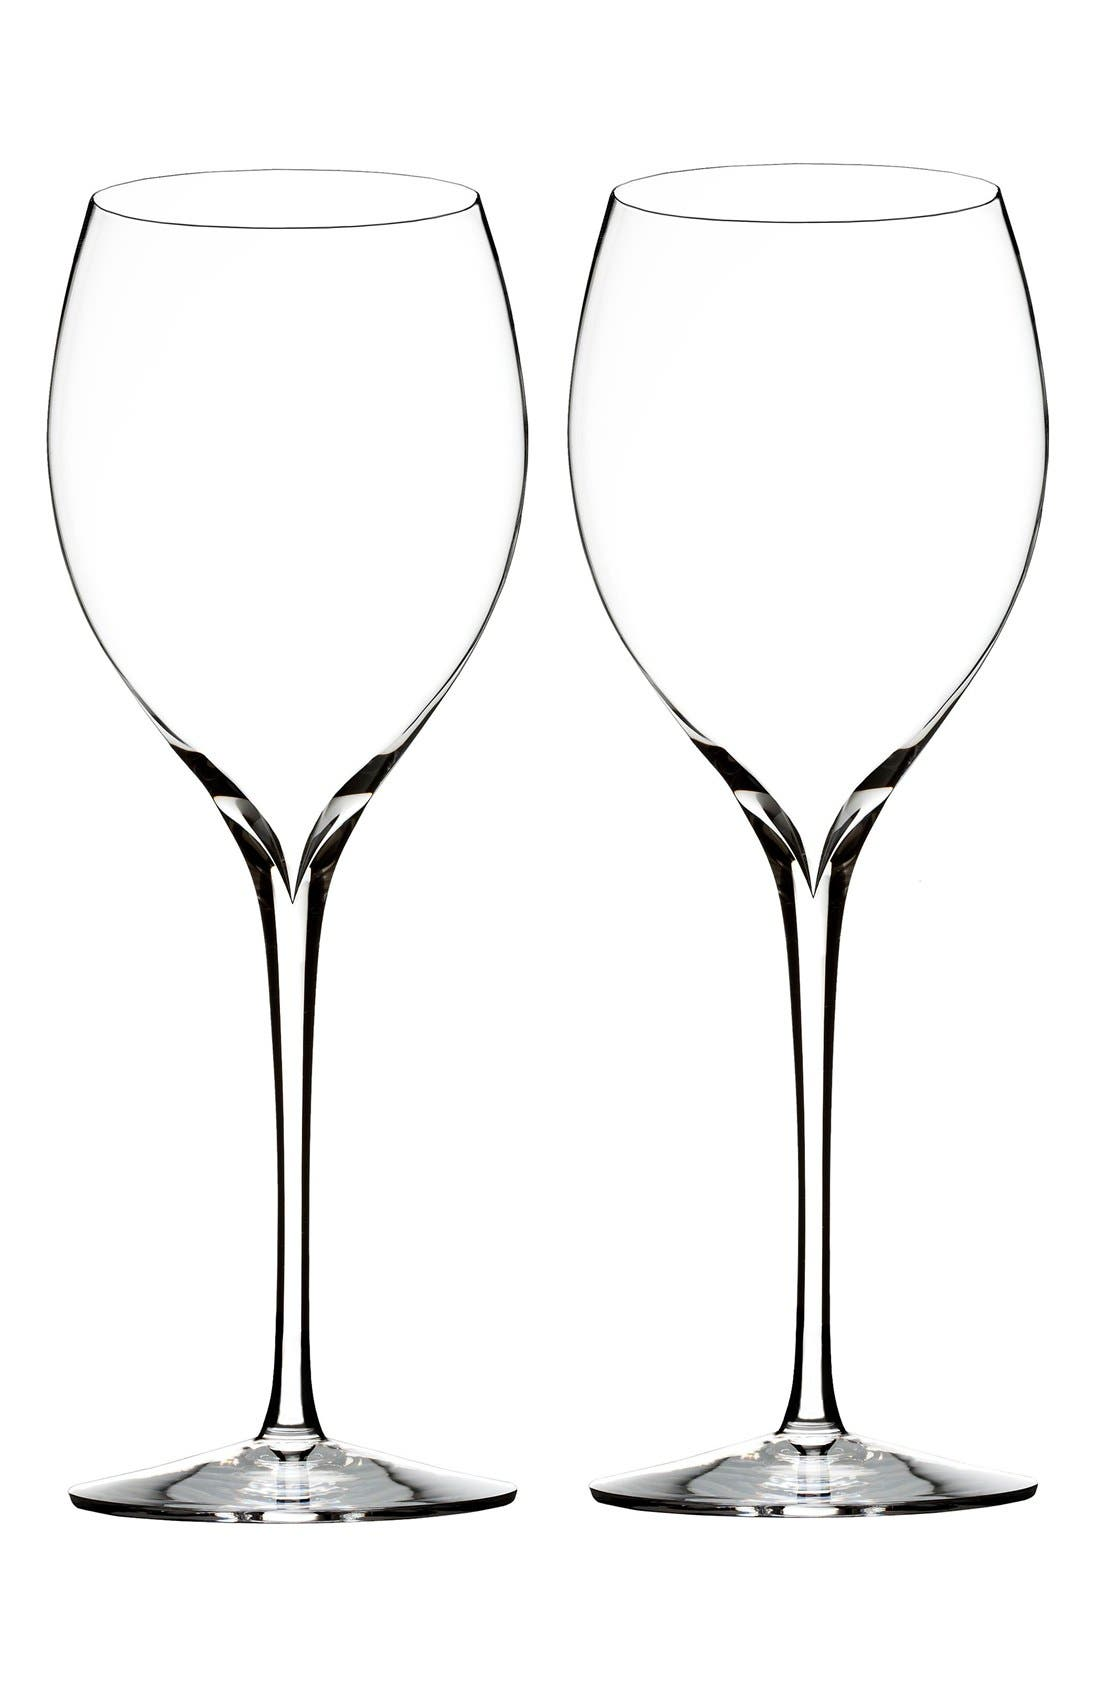 Main Image - Waterford 'Elegance' Fine Crystal Chardonnay Glasses (Set of 2)